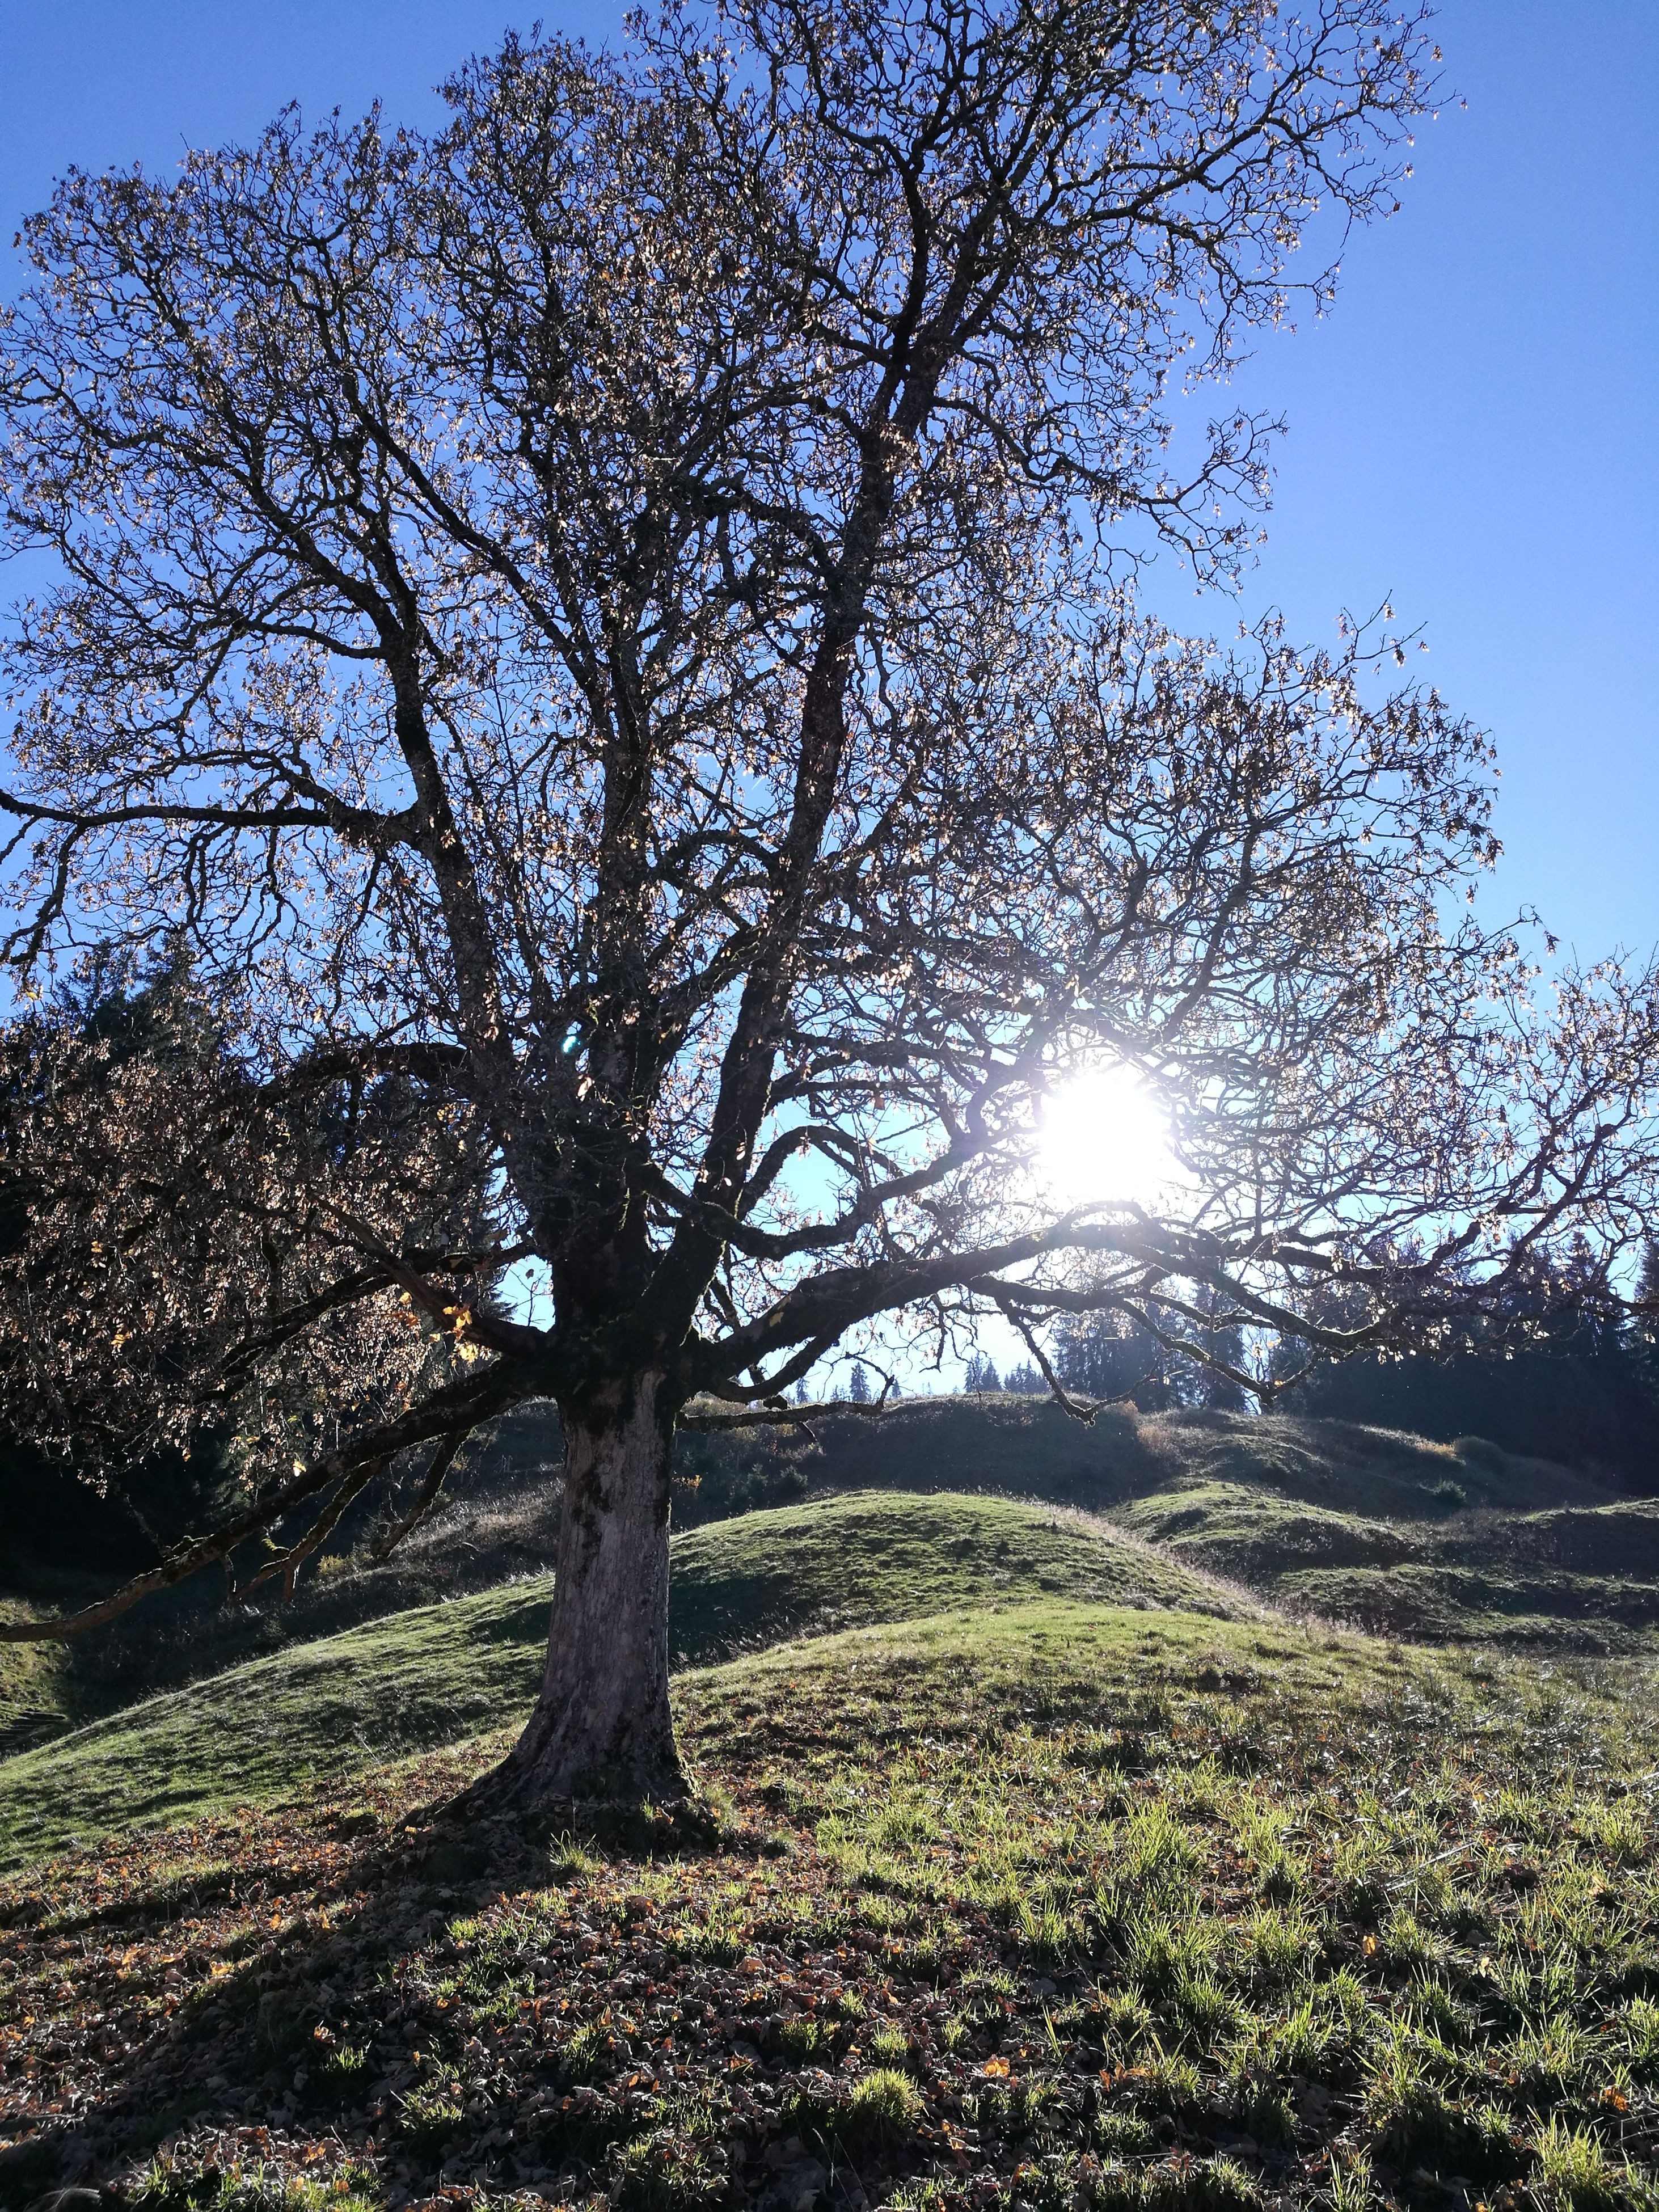 sunlight, sky, tree, nature, lens flare, sun, no people, outdoors, beauty in nature, growth, sunbeam, low angle view, day, tranquility, scenics